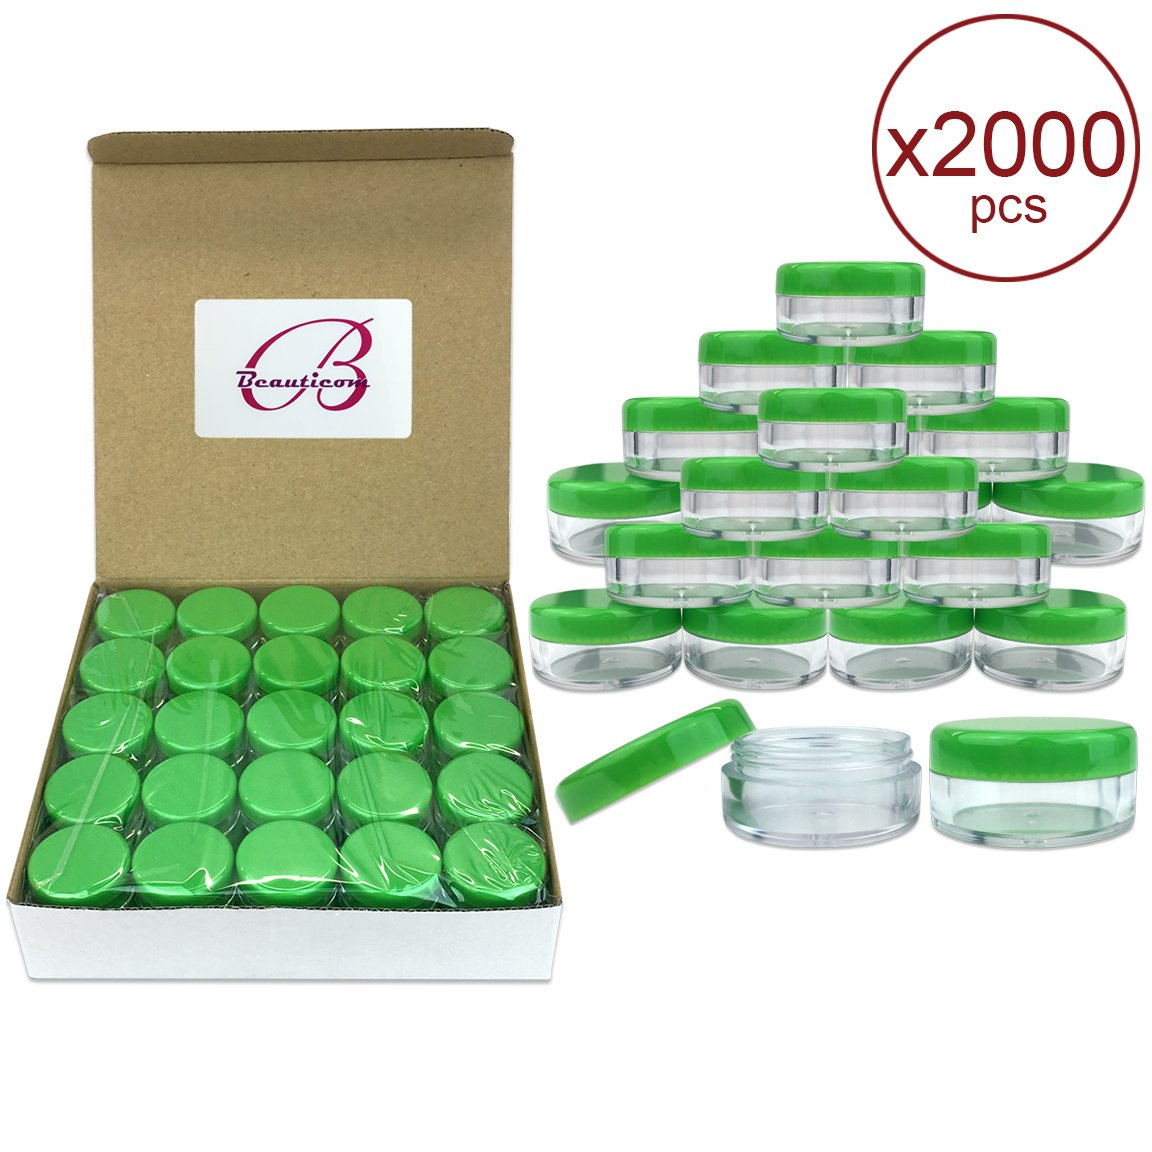 (Quantity: 2000 Pieces) Beauticom 5G/5ML Round Clear Jars with GREEN Lids for Scrubs, Oils, Toner, Salves, Creams, Lotions, Makeup Samples, Lip Balms - BPA Free